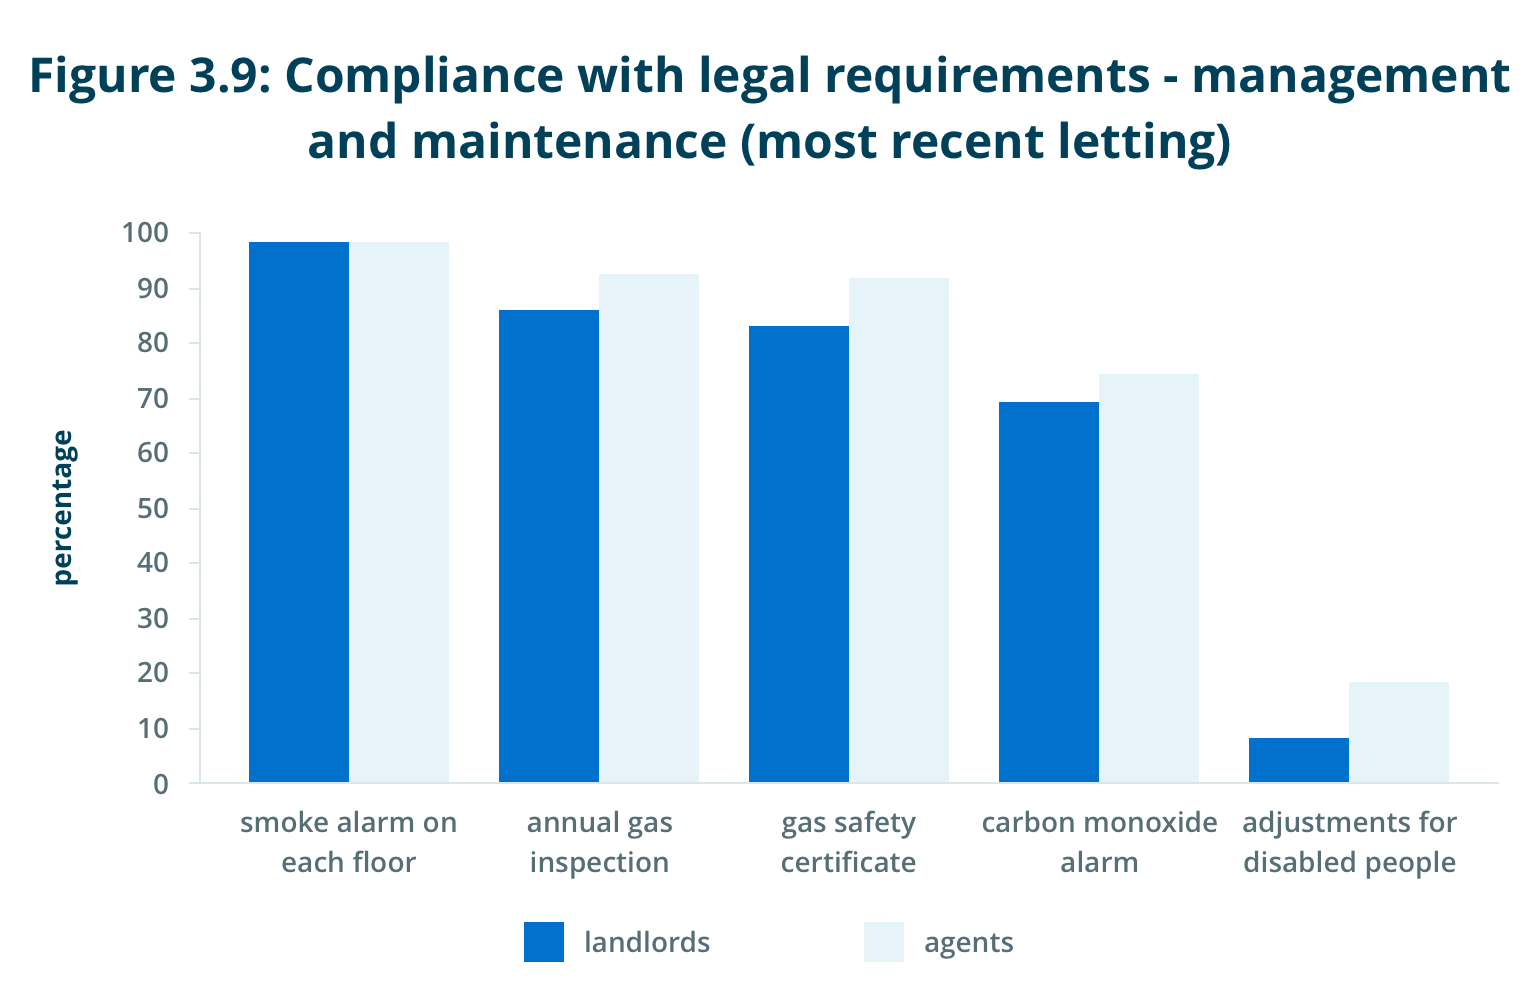 Compliance with legal requirements - management and maintenance (most recent letting)